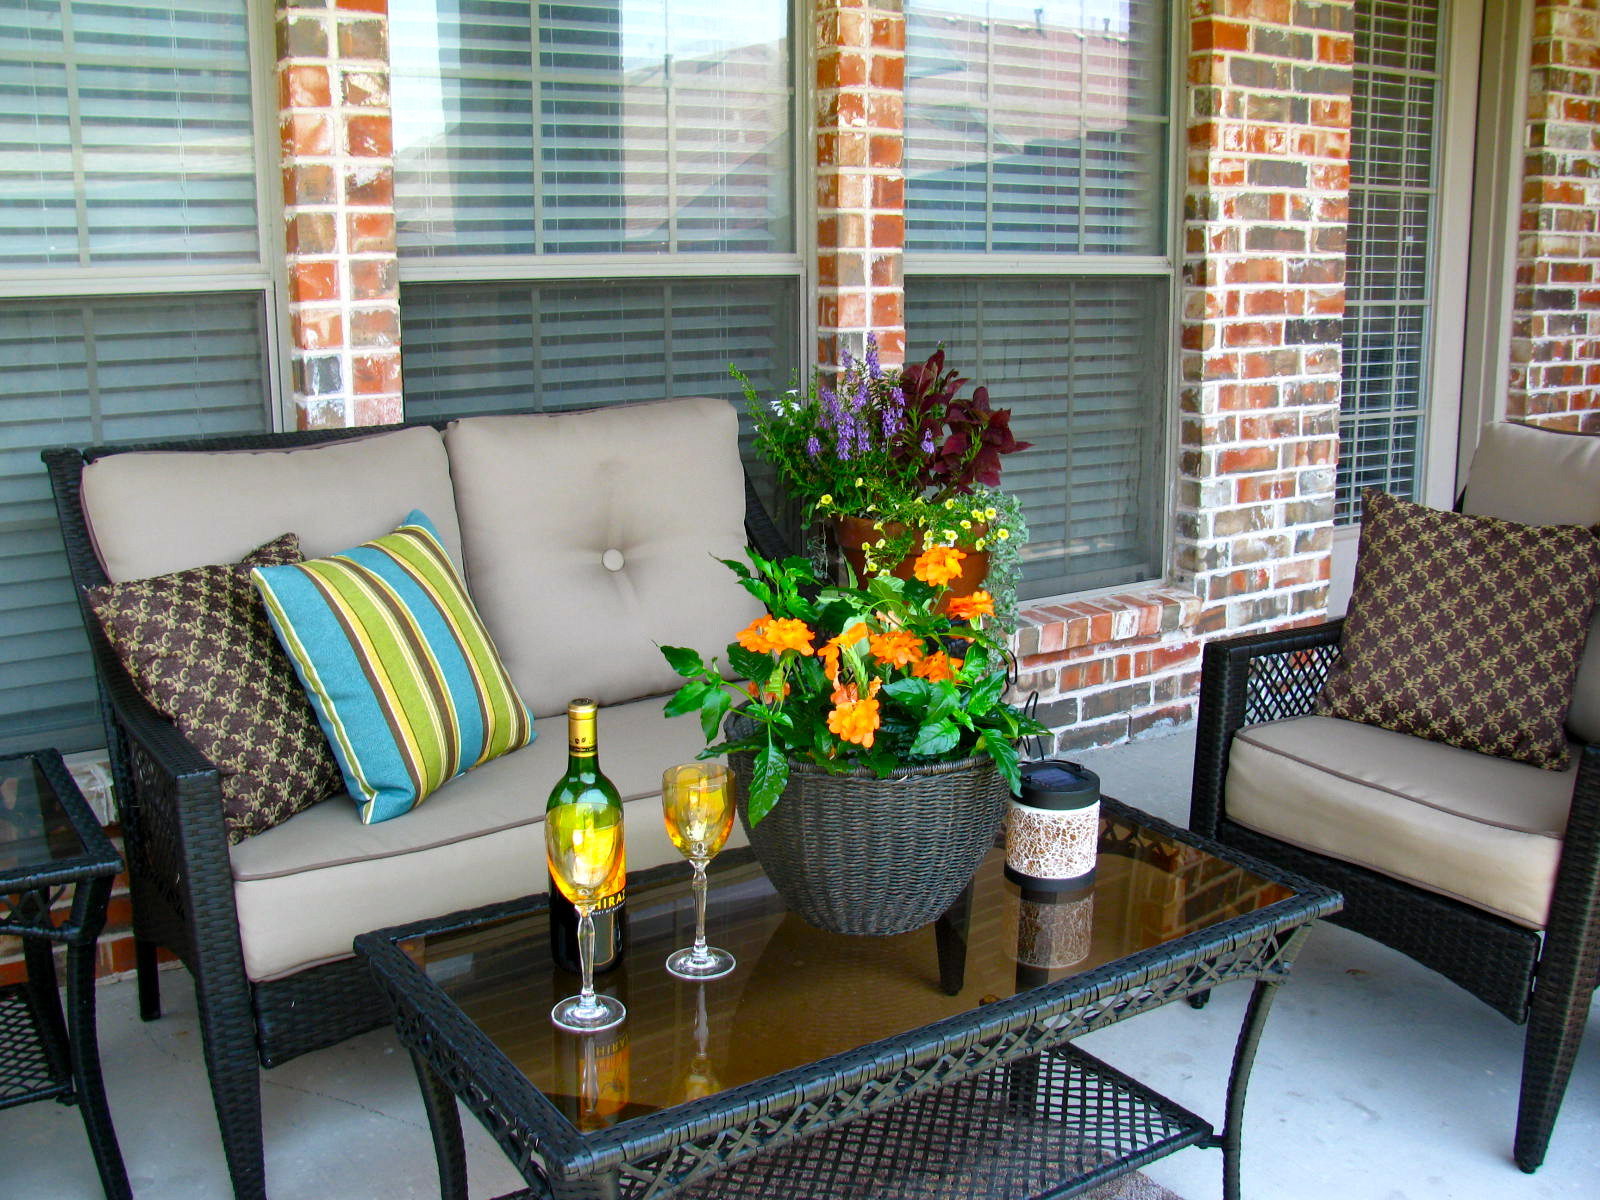 Best ideas about Porch Furniture Ideas . Save or Pin MAY DAYS A Small Patio Makeover Now.